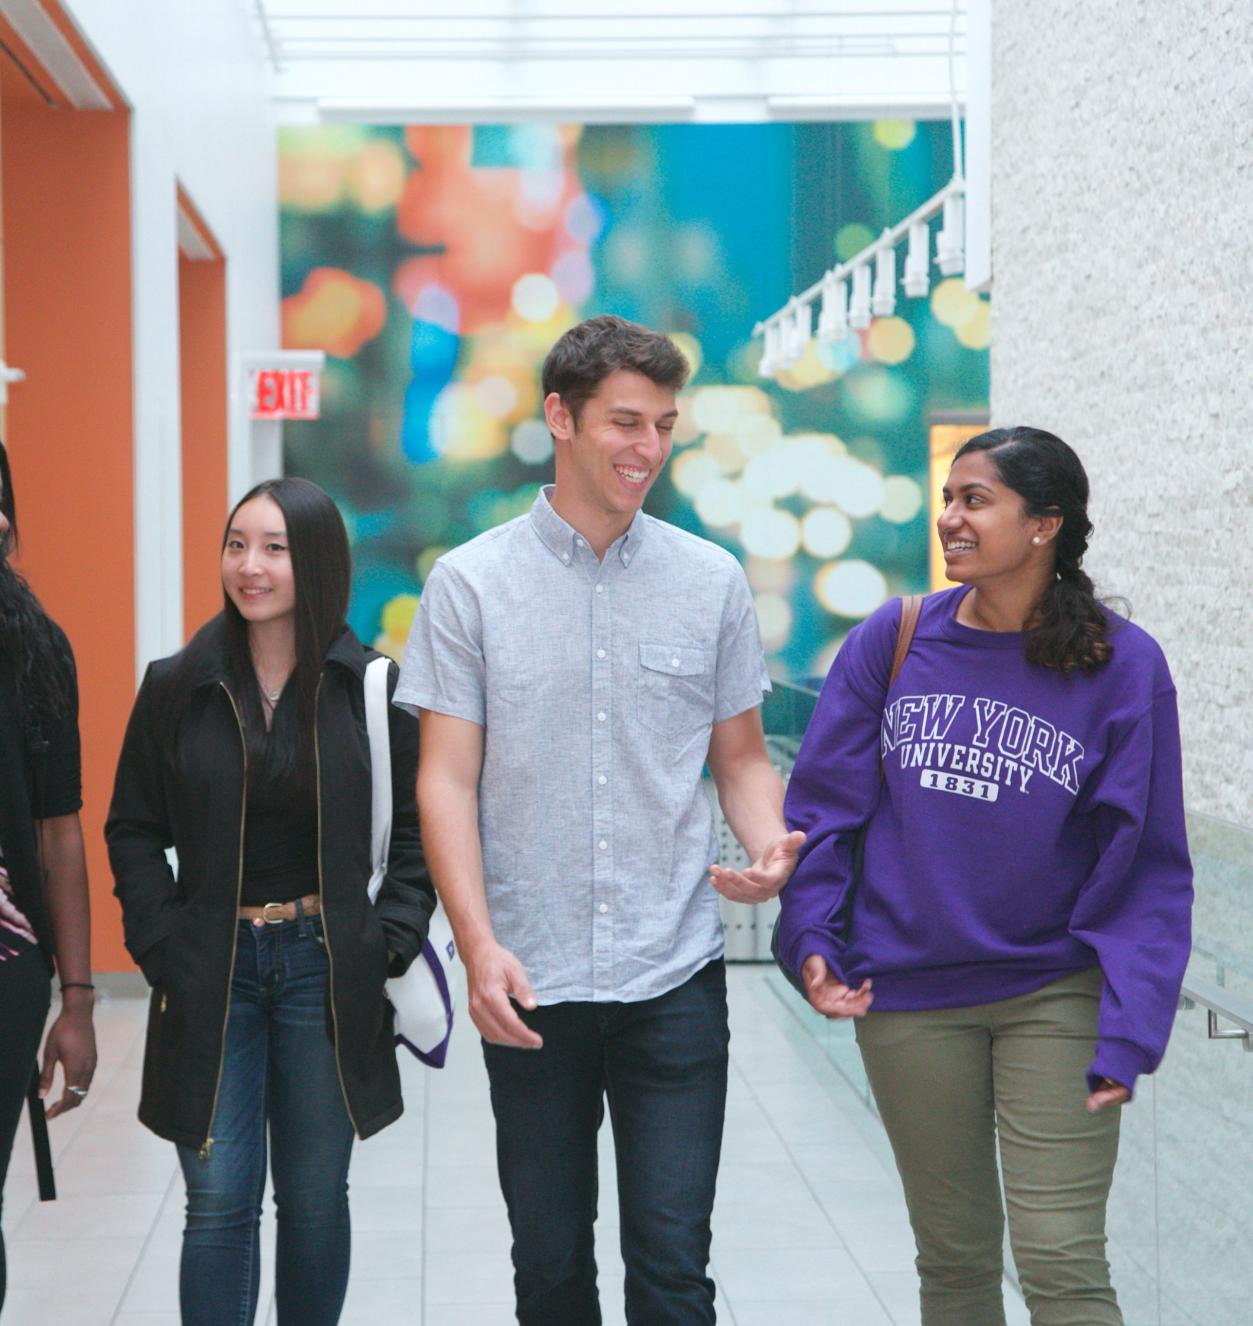 Students walking down the hall of Tisch